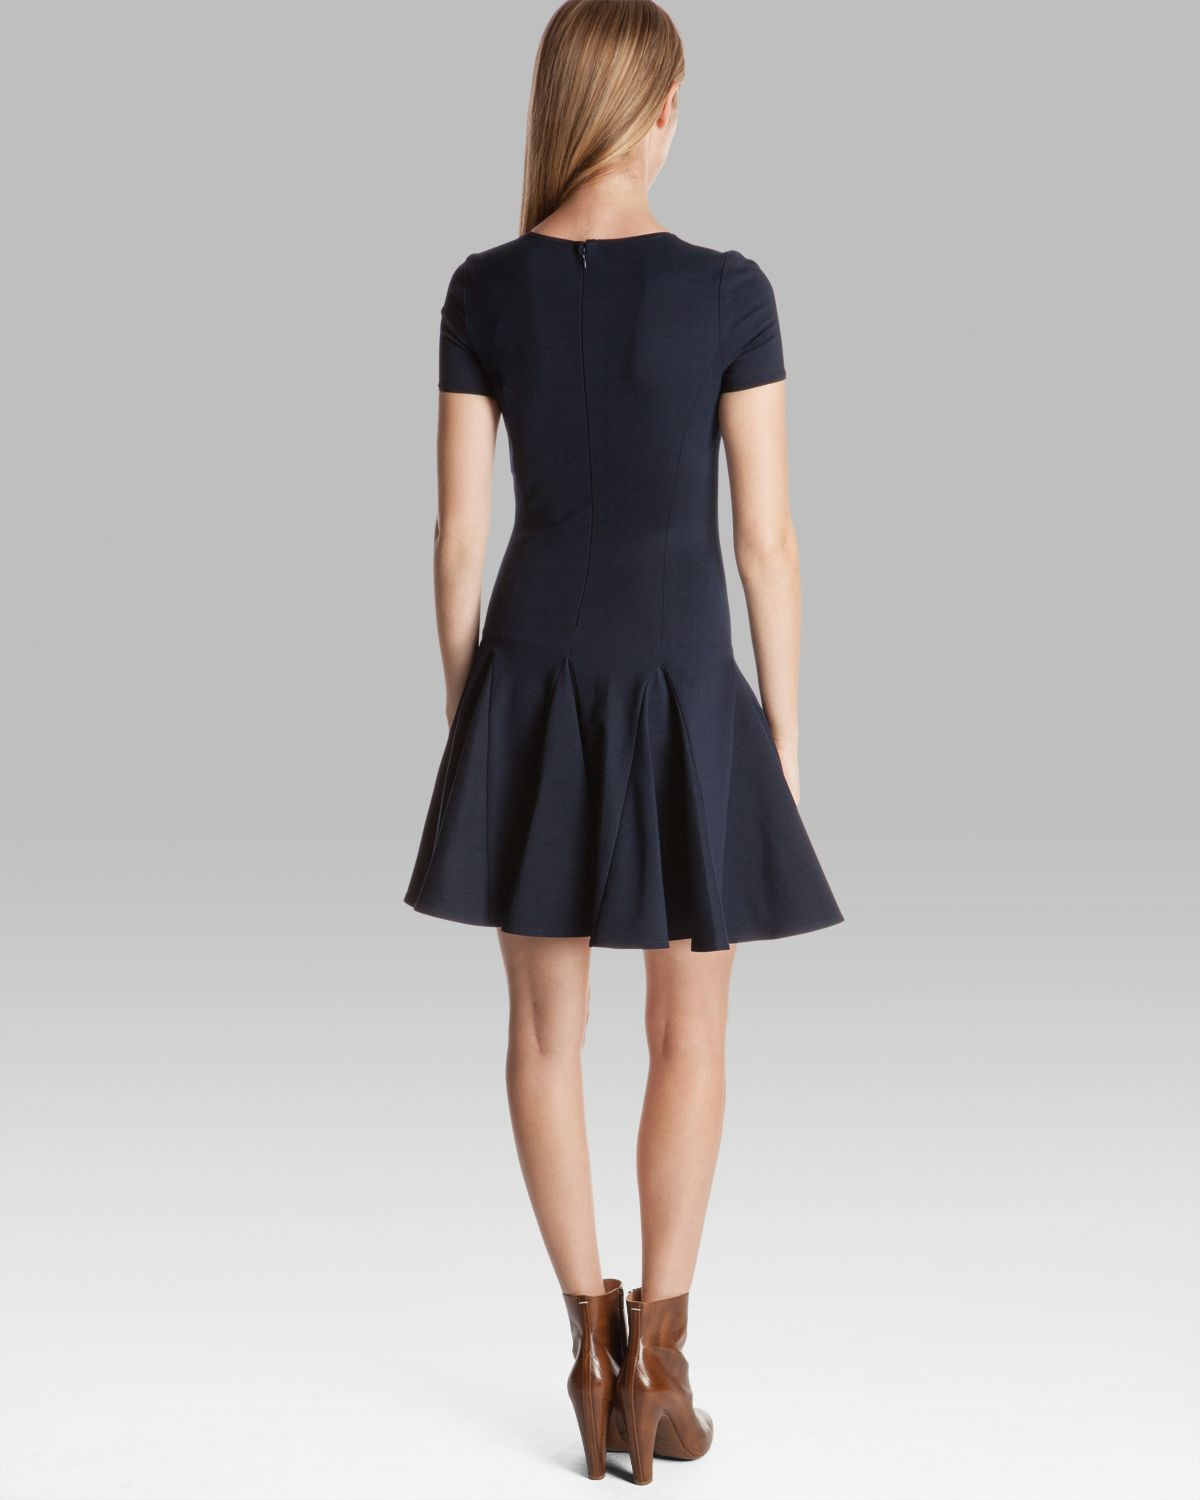 Halston Dress Short Sleeve Ponte With Flared Skirt In Navy